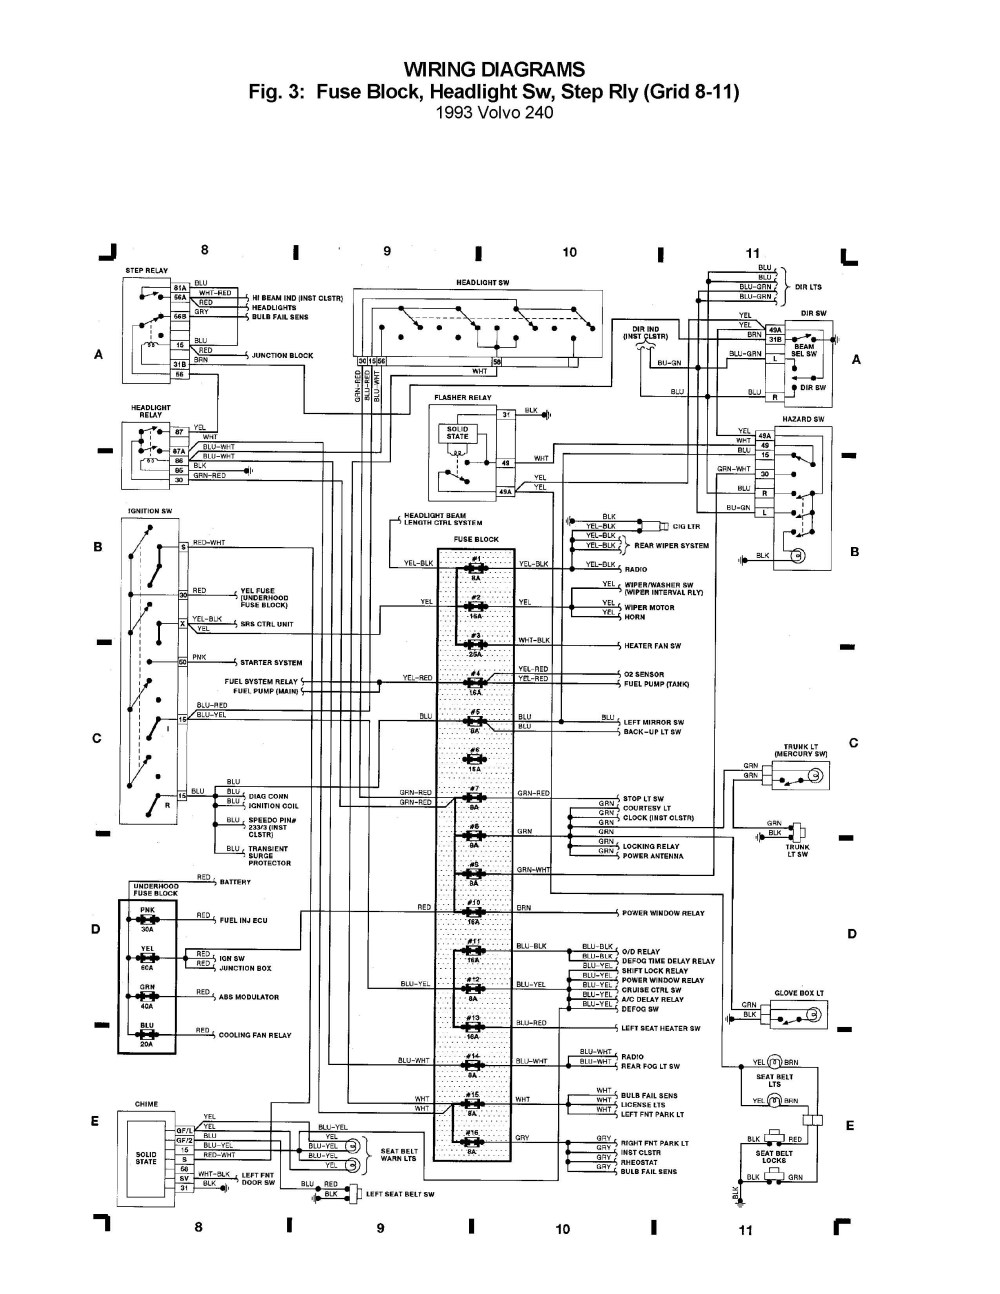 medium resolution of 1993 volvo 240 fuse diagram wiring diagram forward 1993 volvo 240 radio wiring diagram 1993 volvo 240 fuse diagram